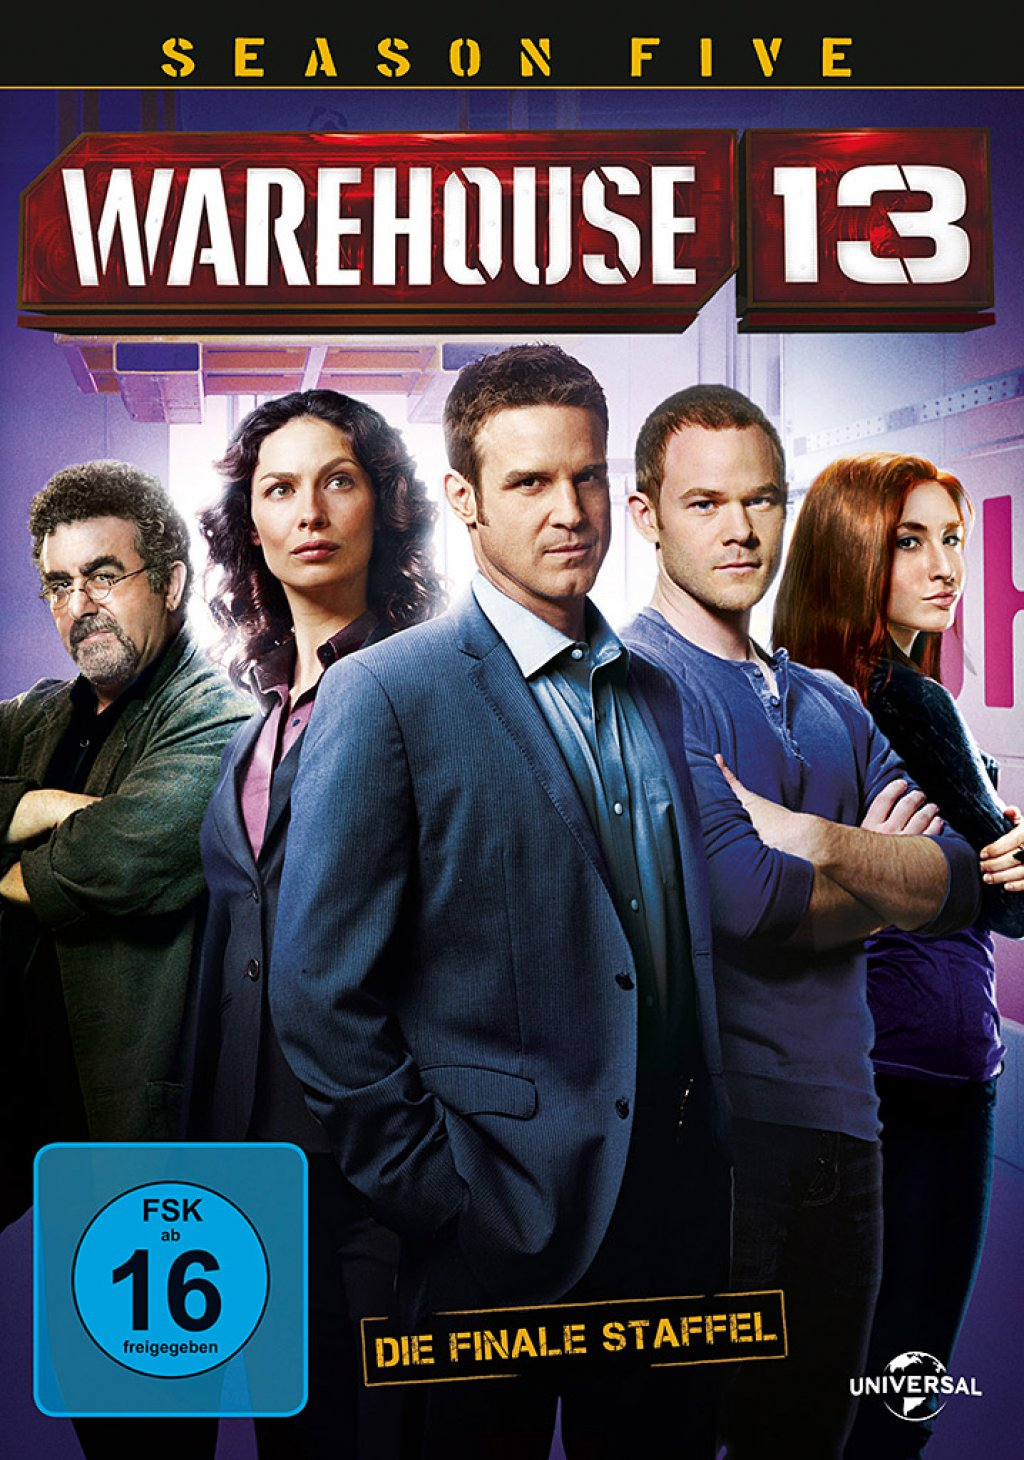 Warehouse 13 - Season 5 (DVD)